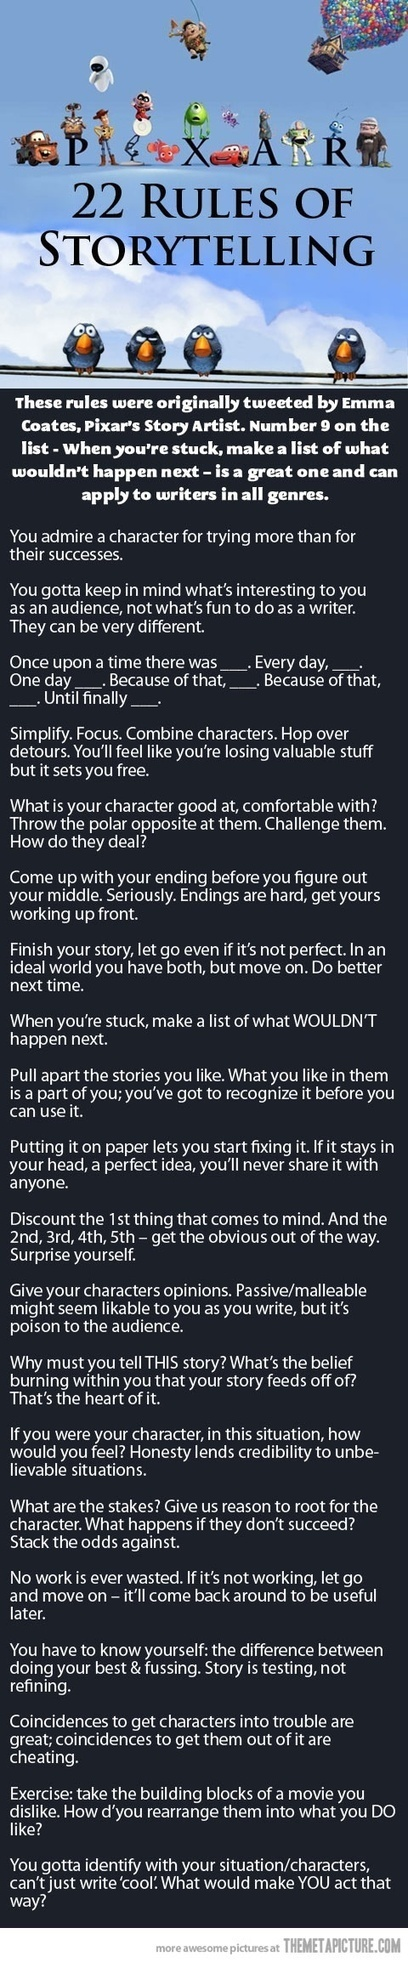 Pixar's  22 Rules Of Storytelling by Emma Coates,Pixar's Story Artist | Creative_Inspiration | Scoop.it